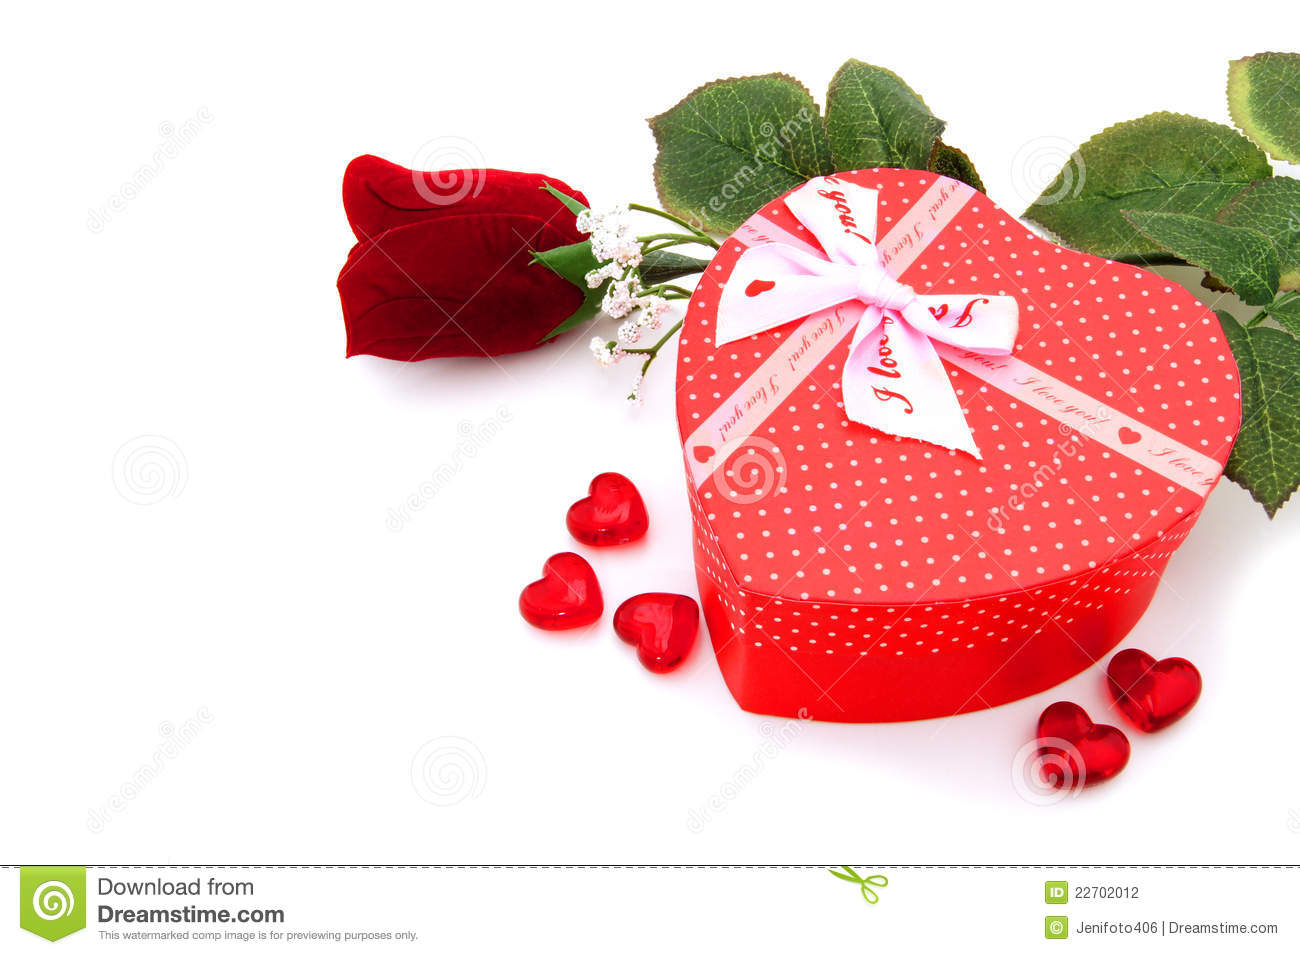 valentine day gifts online pakistan